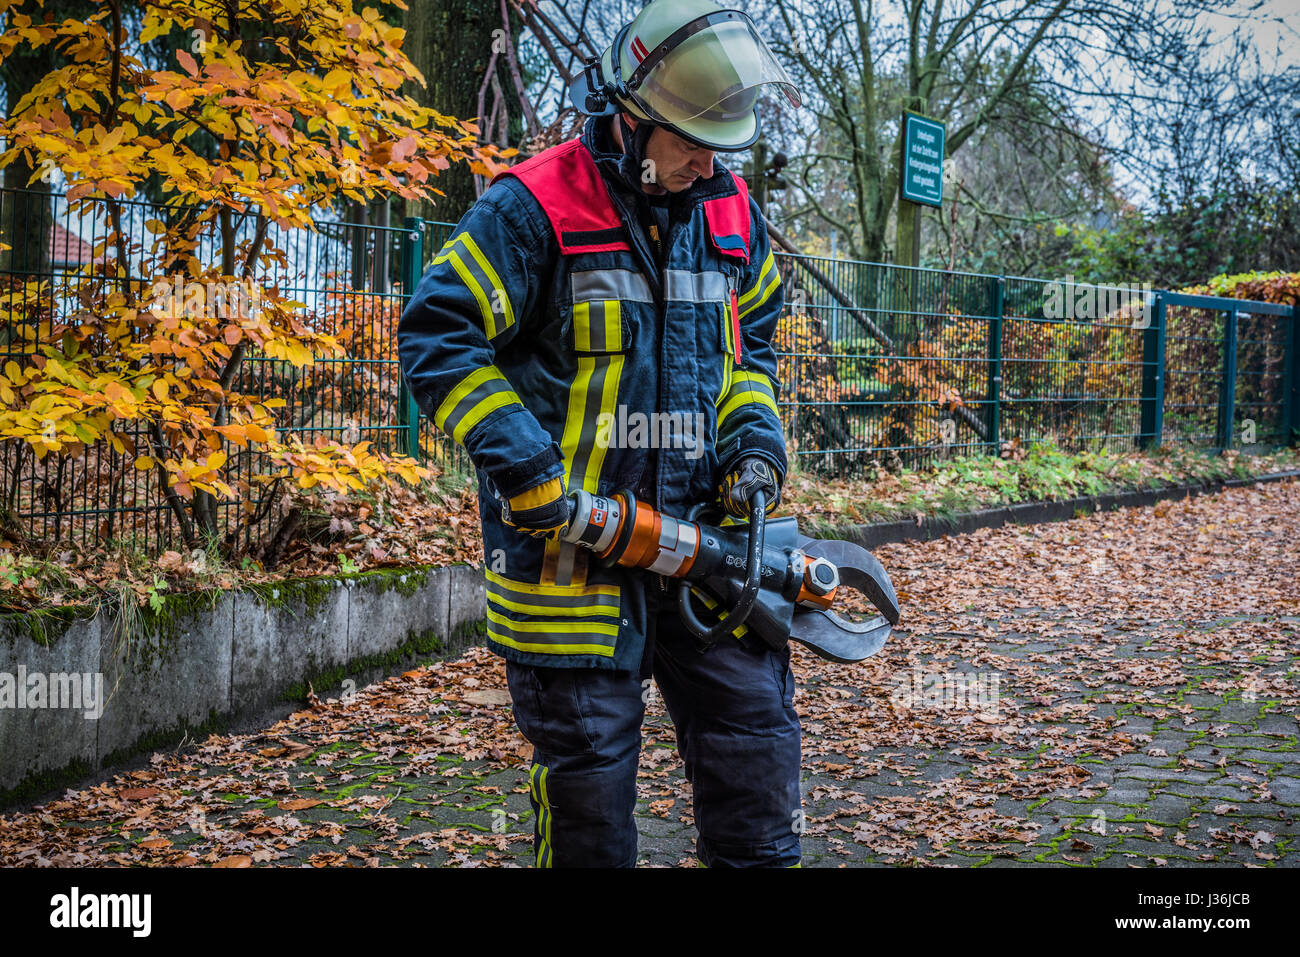 Firefighter in action with a  large forceps to open from car doors - HDR - Stock Image